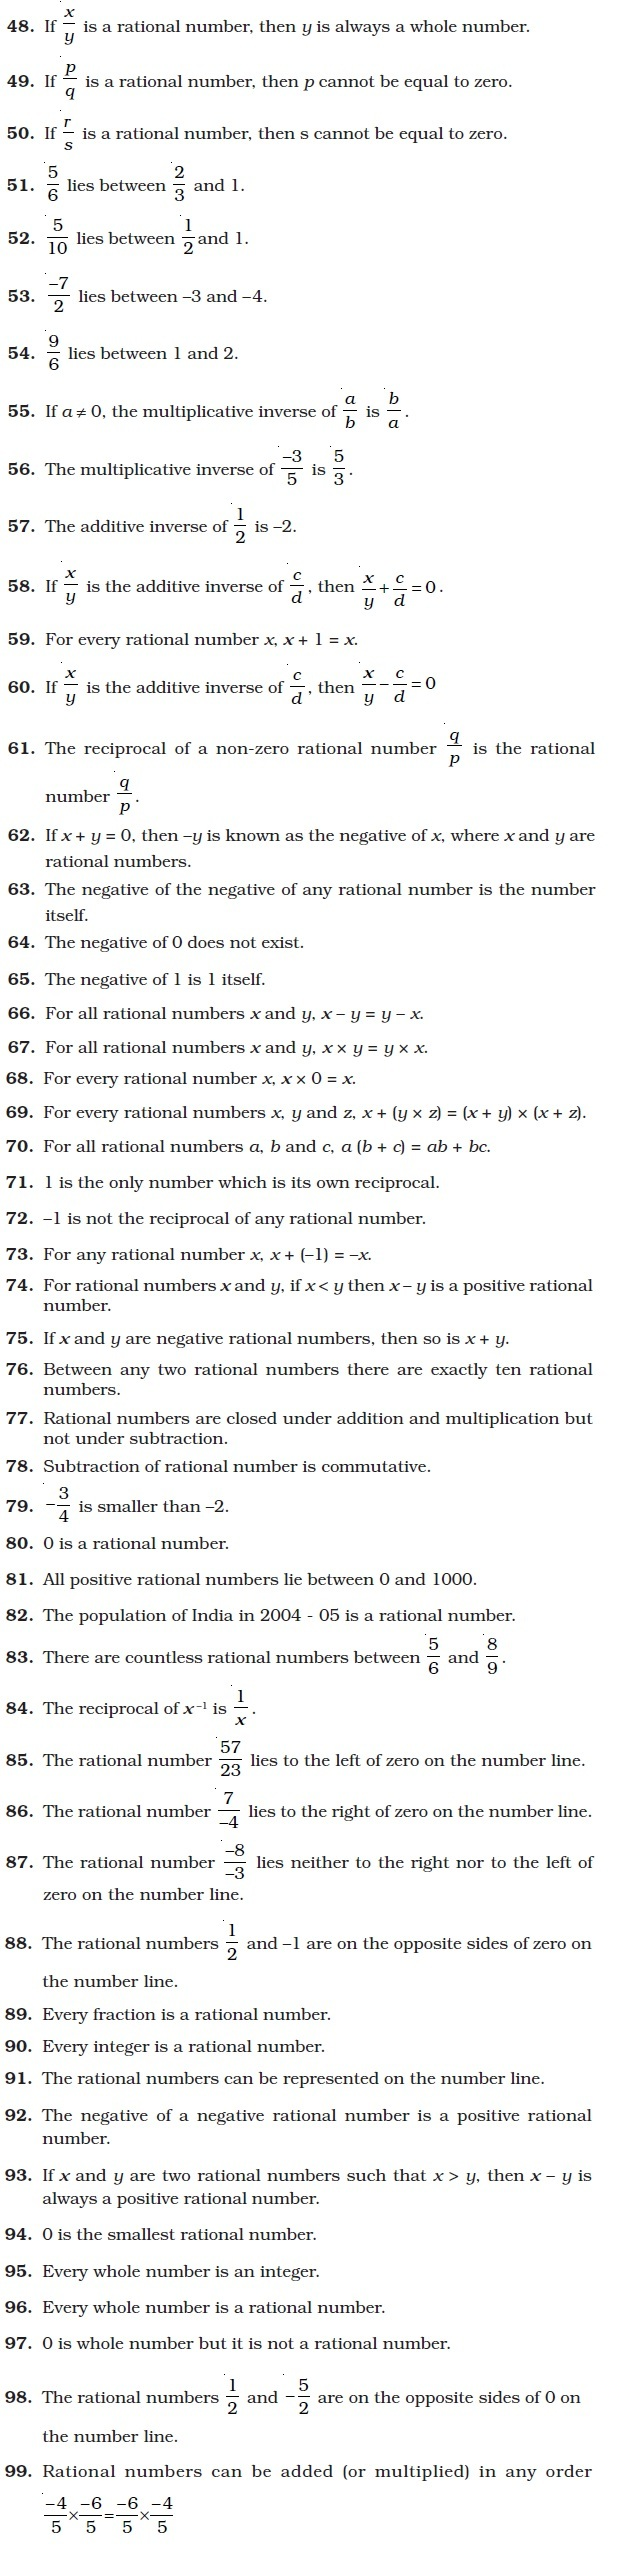 Class 8 Important Questions for Maths – Rational Numbers